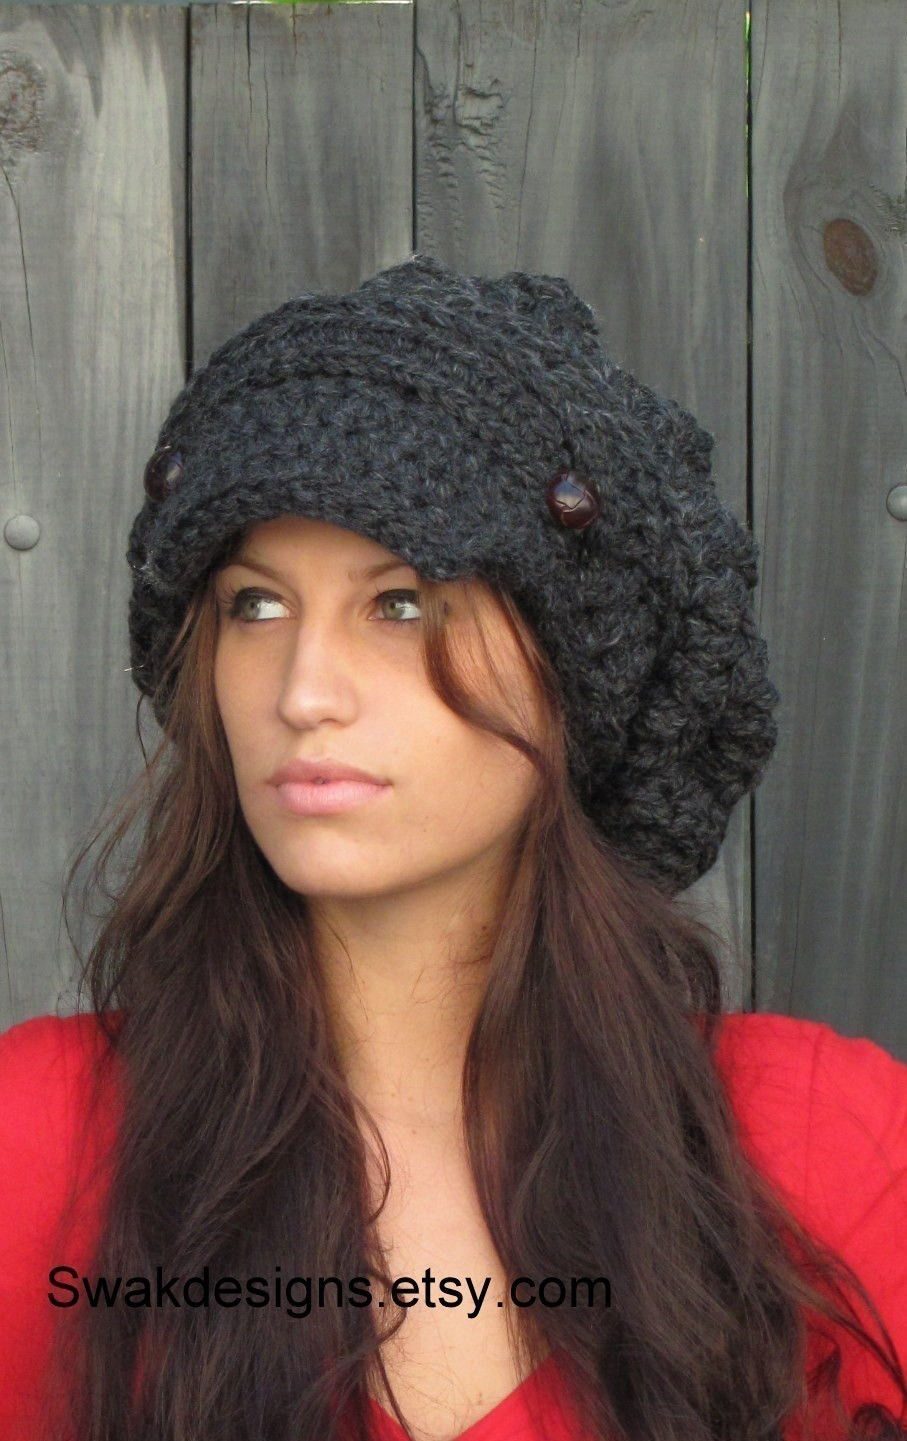 3b11e49347e Black Slouchy Hat Womens Hat Two Button Band Newsboy Cap Handmade ...